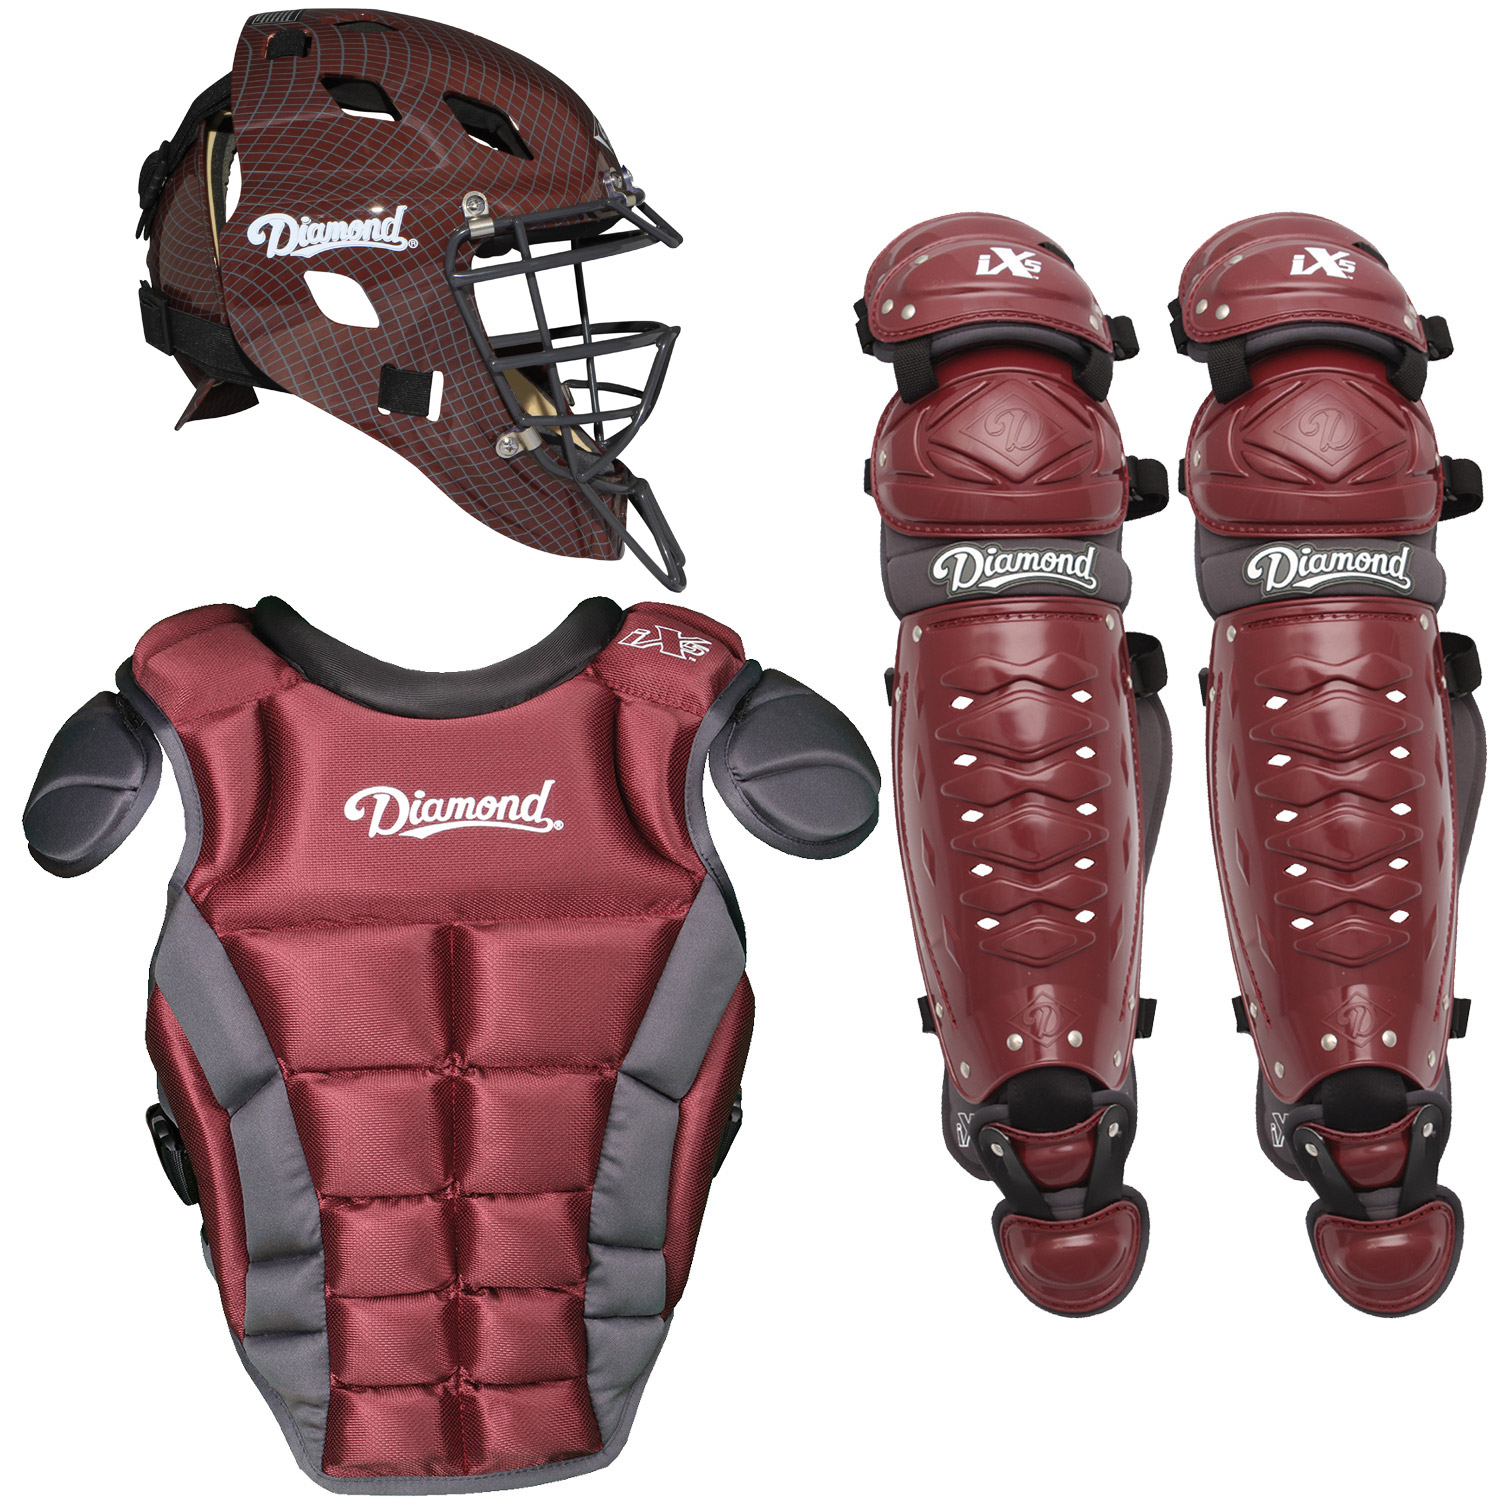 Diamond iX5 Pro Youth Baseball Catcher's Package